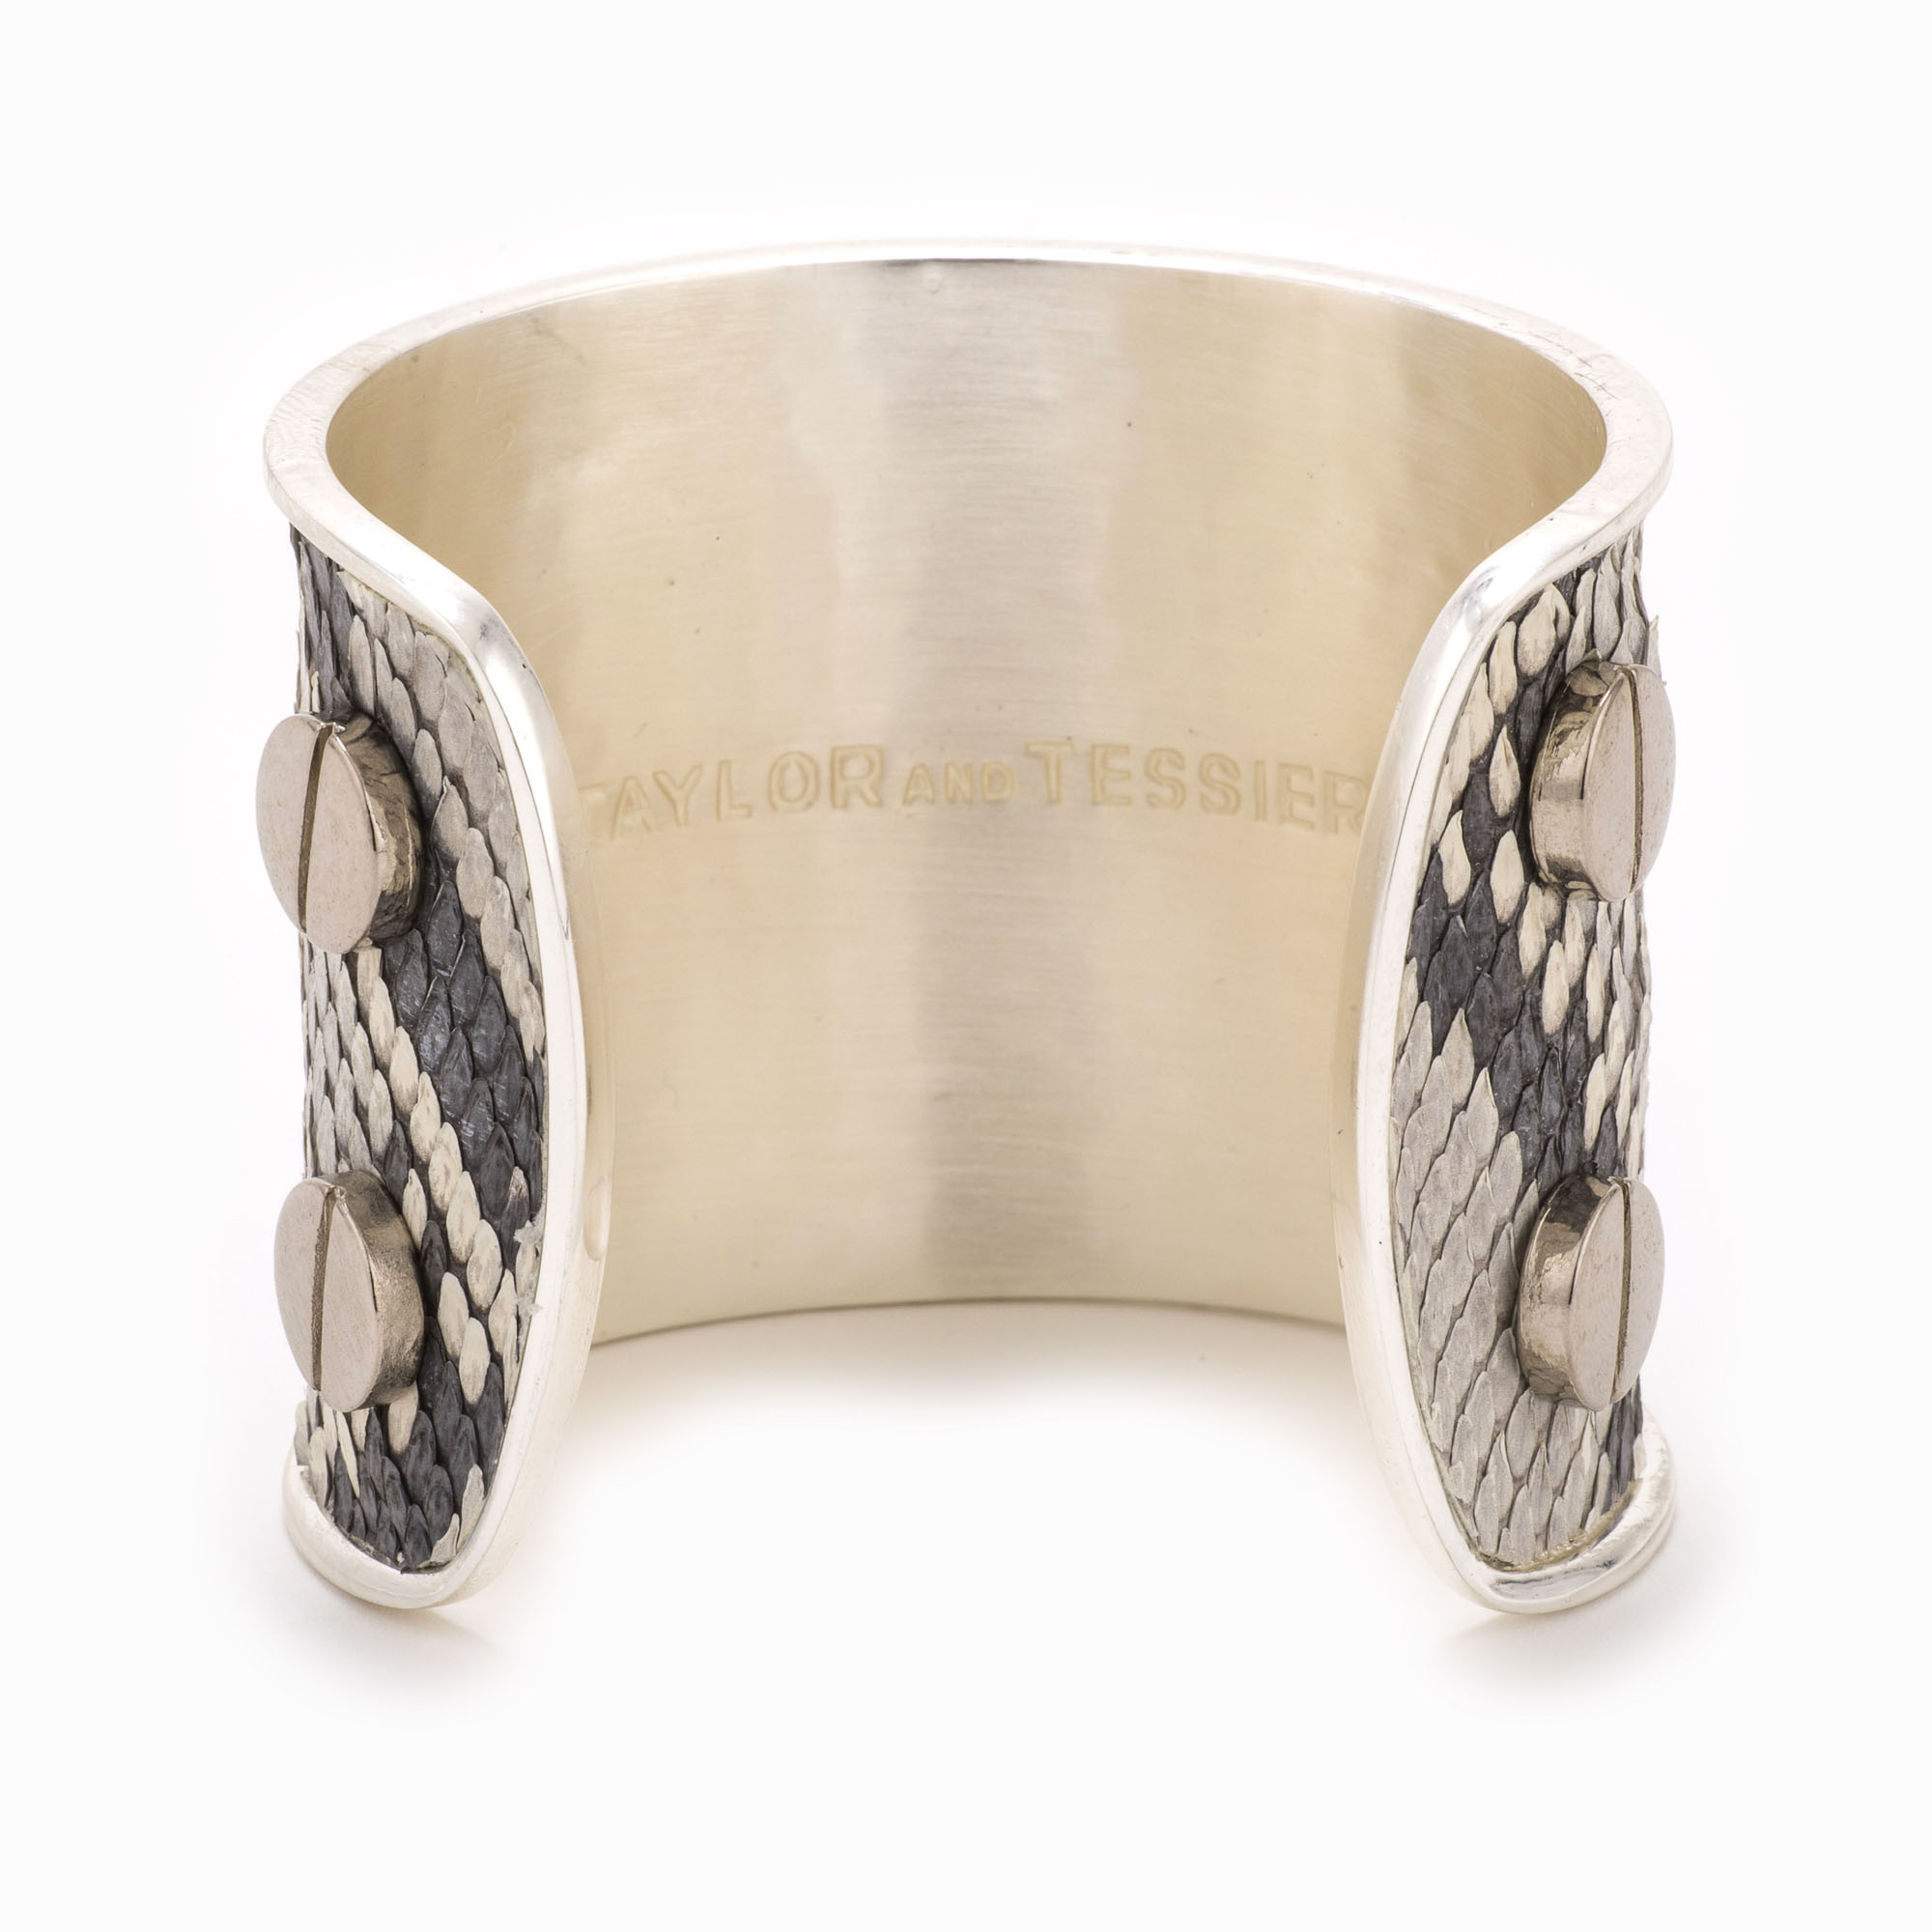 A large silver cuff with black and white colored snakeskin pattern inlaid.